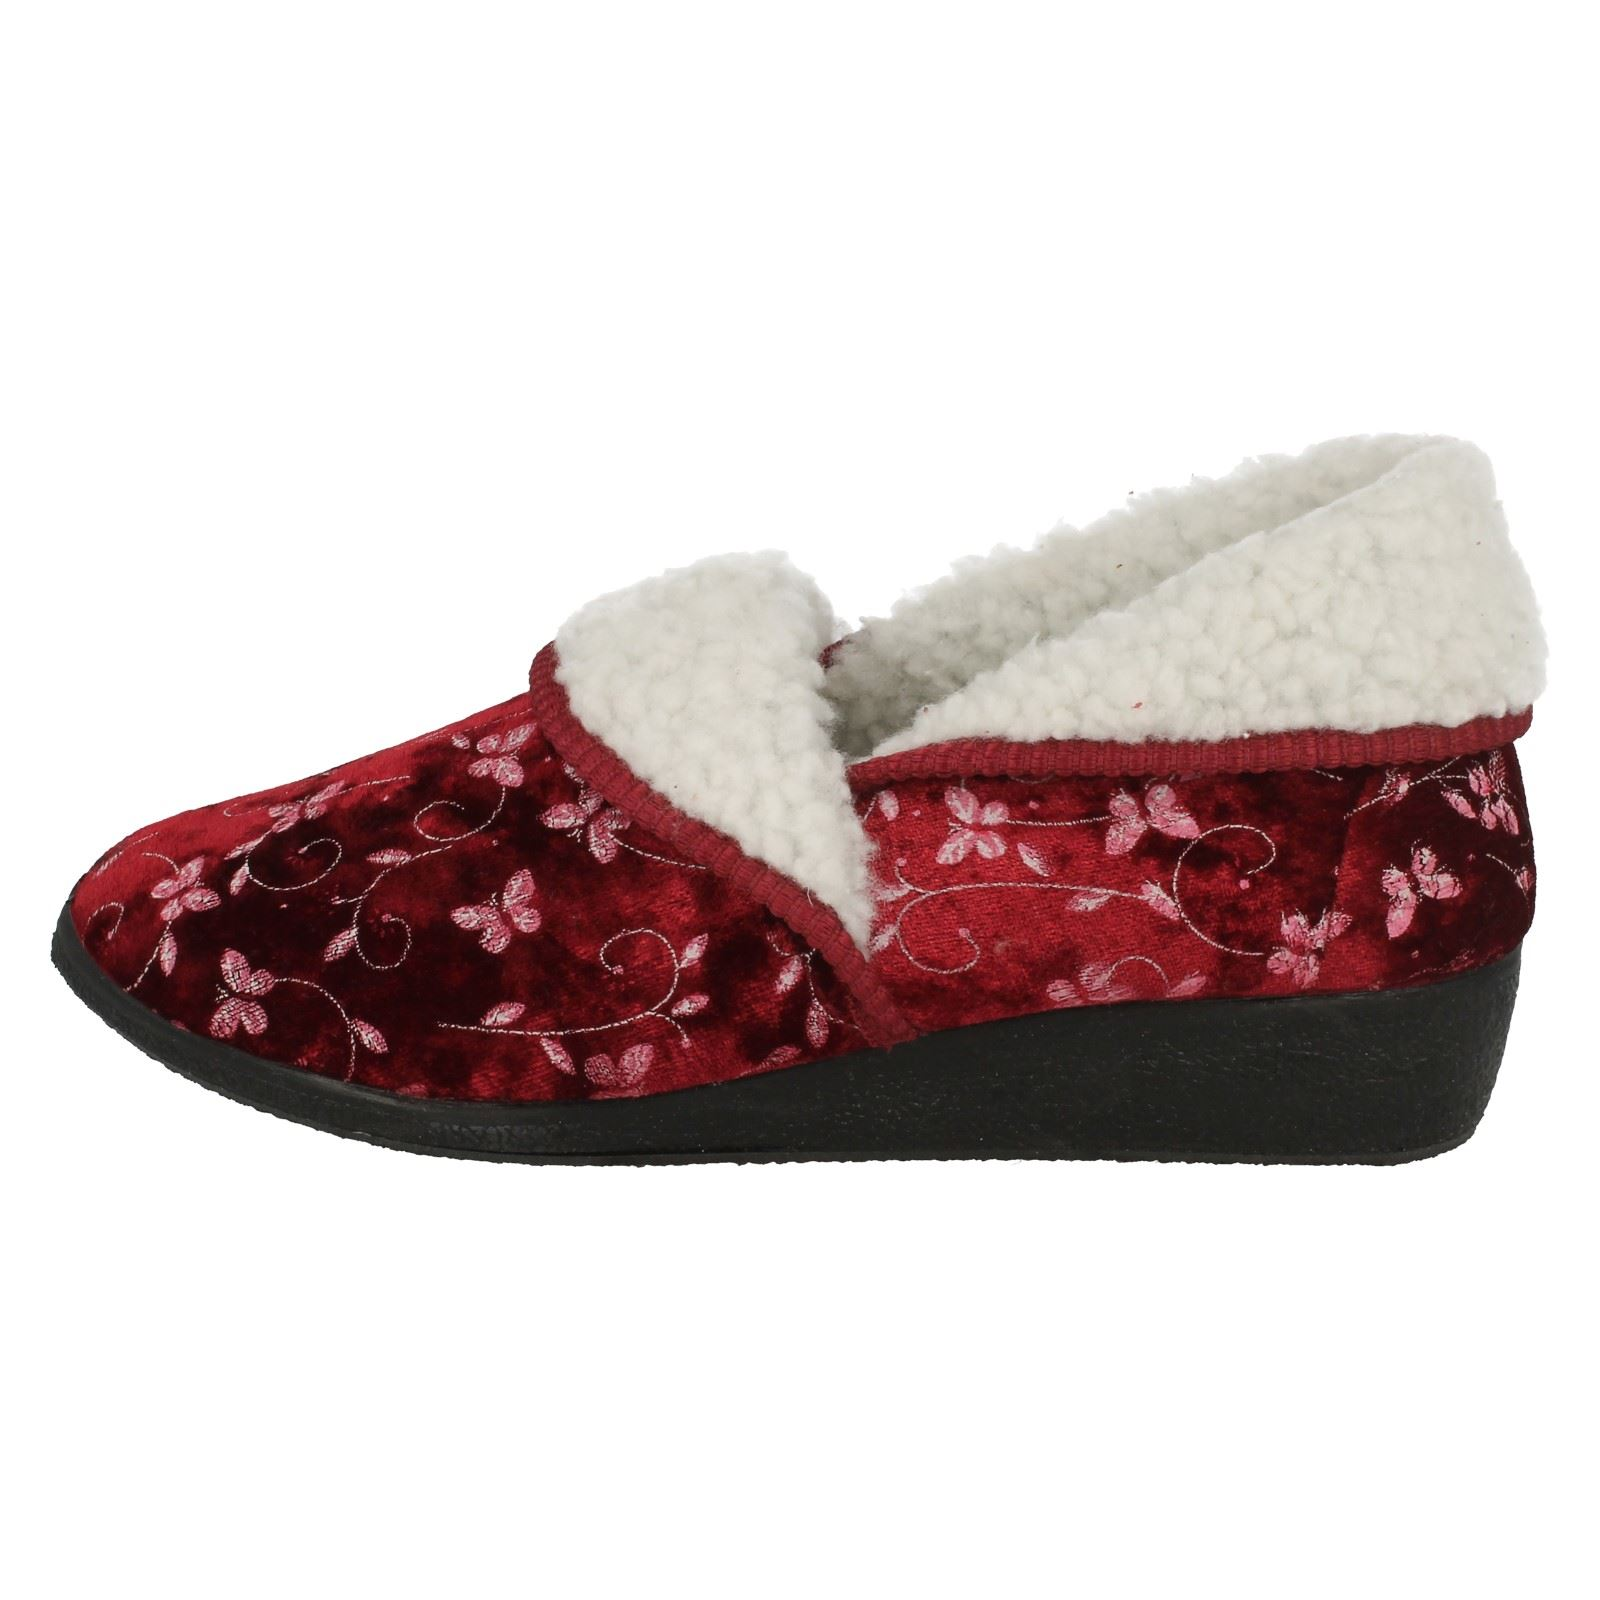 Ladies-Four-Seasons-House-Slippers-Edith thumbnail 4